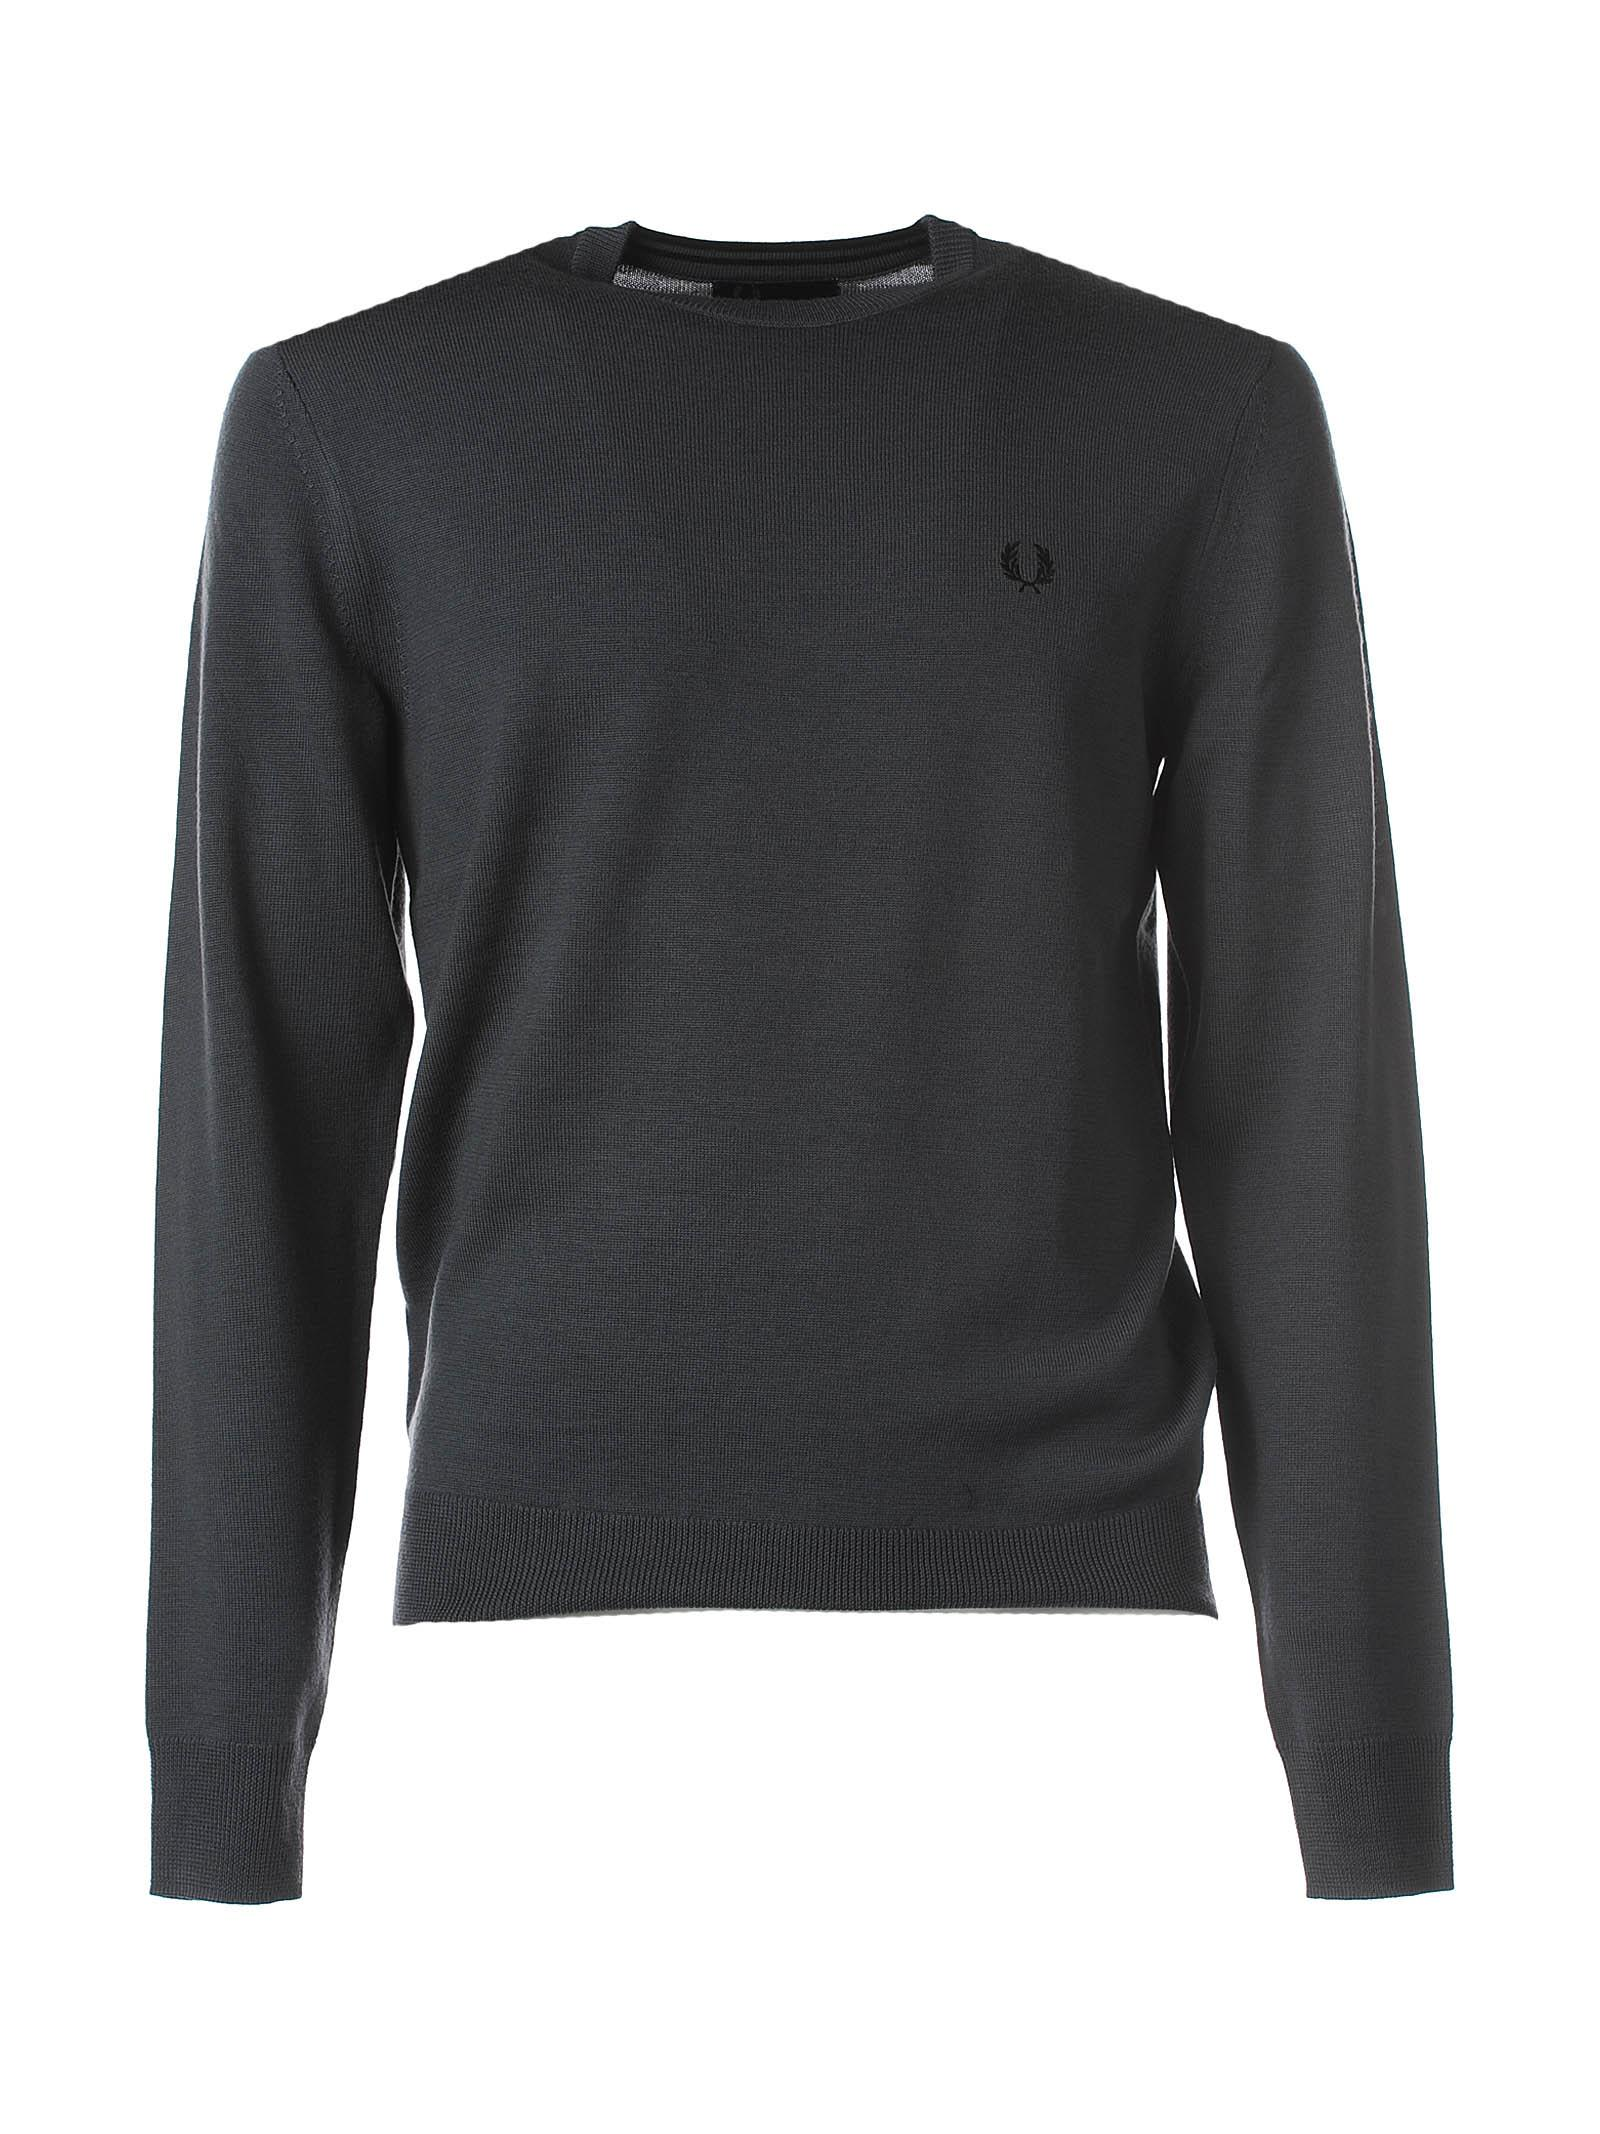 Fred Perry Grey Wool Jumper